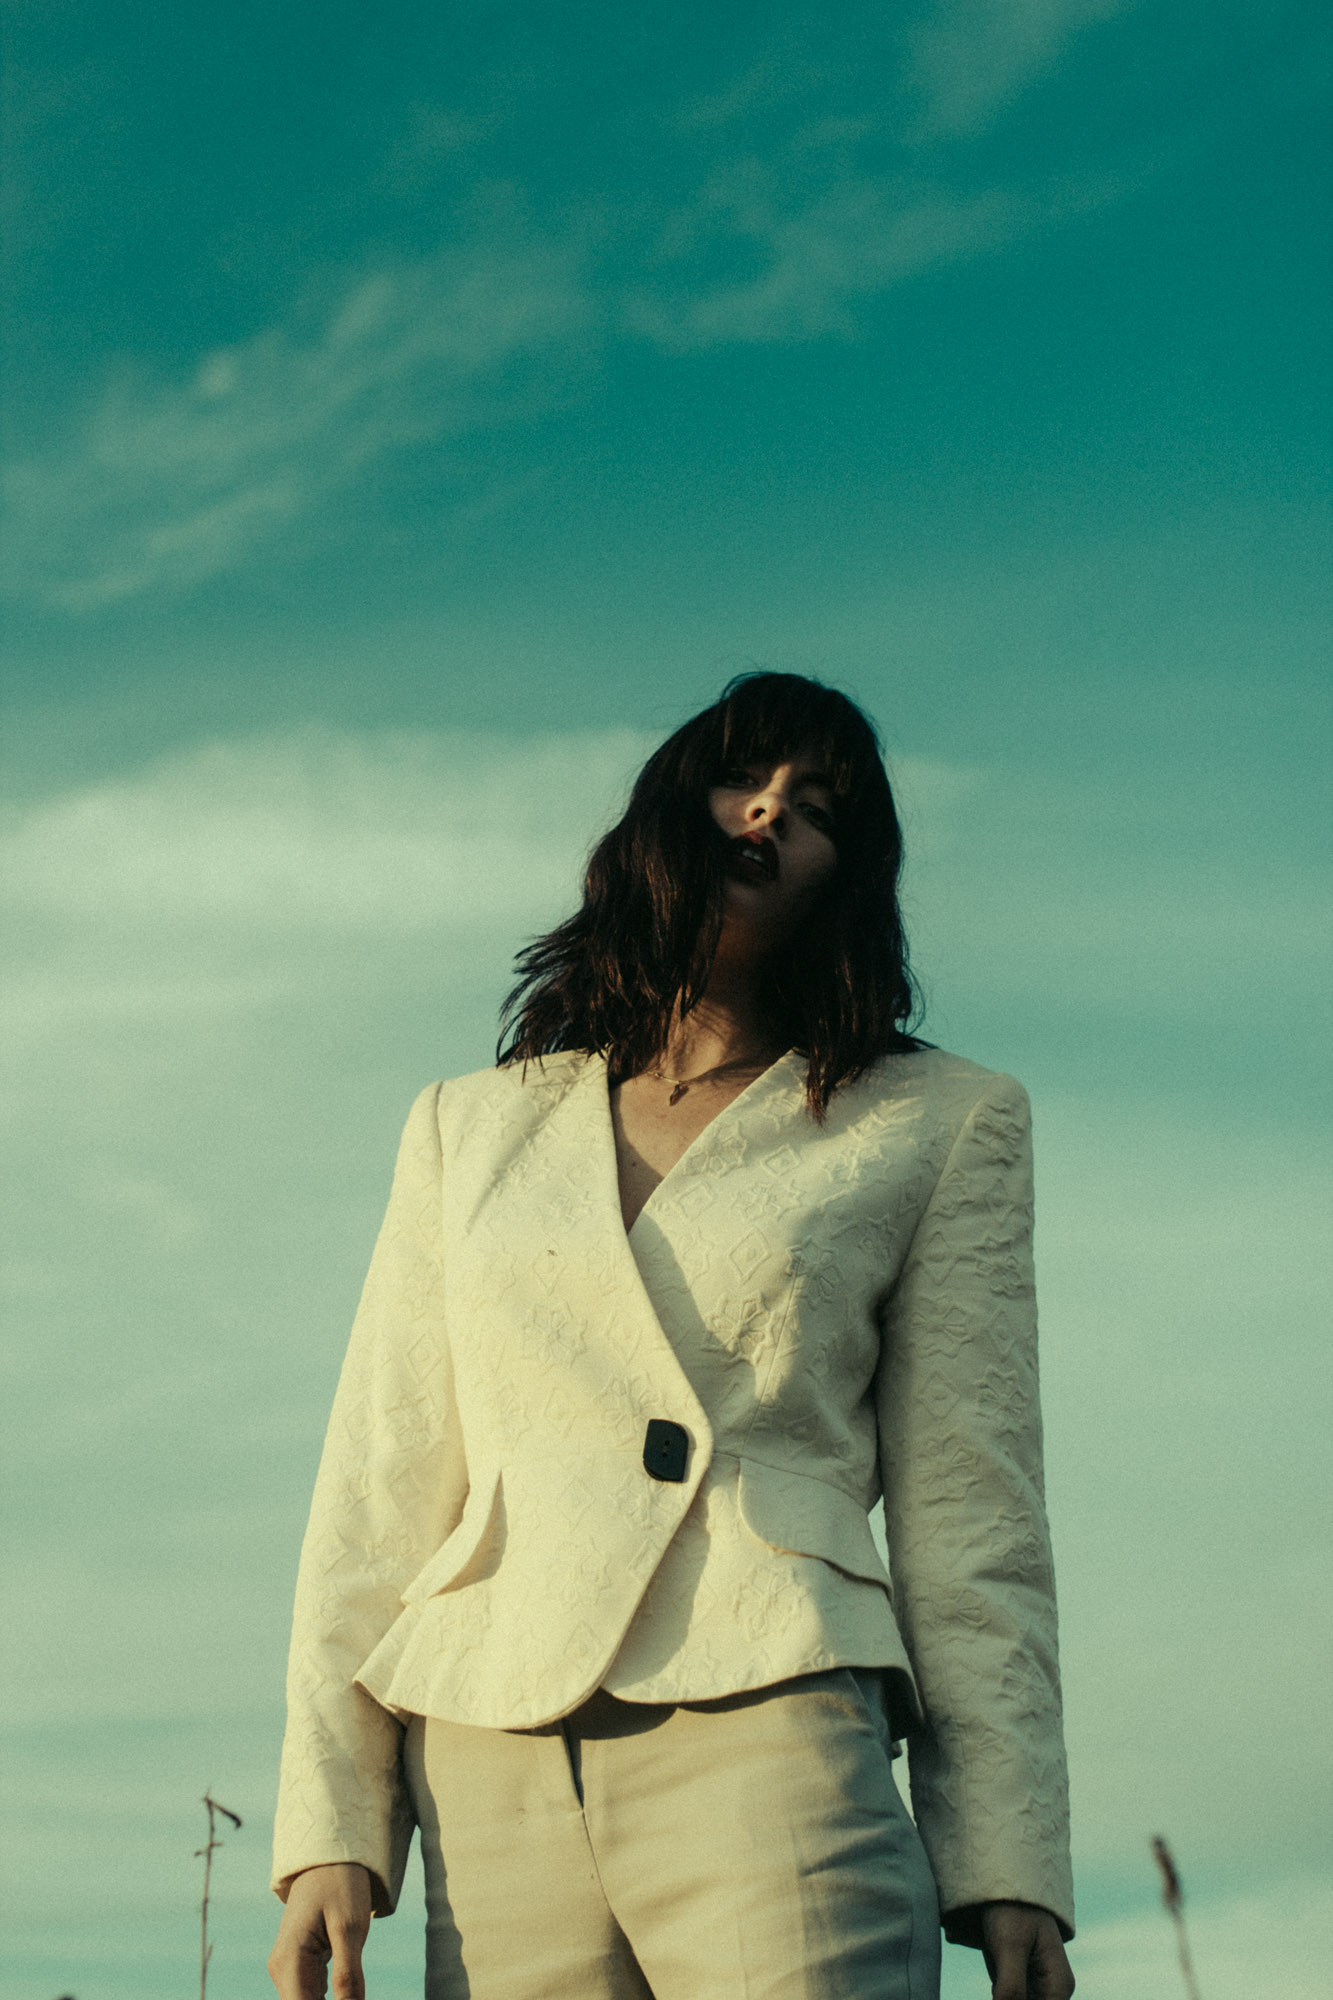 White Lies - Editorial by Diogo Esaki